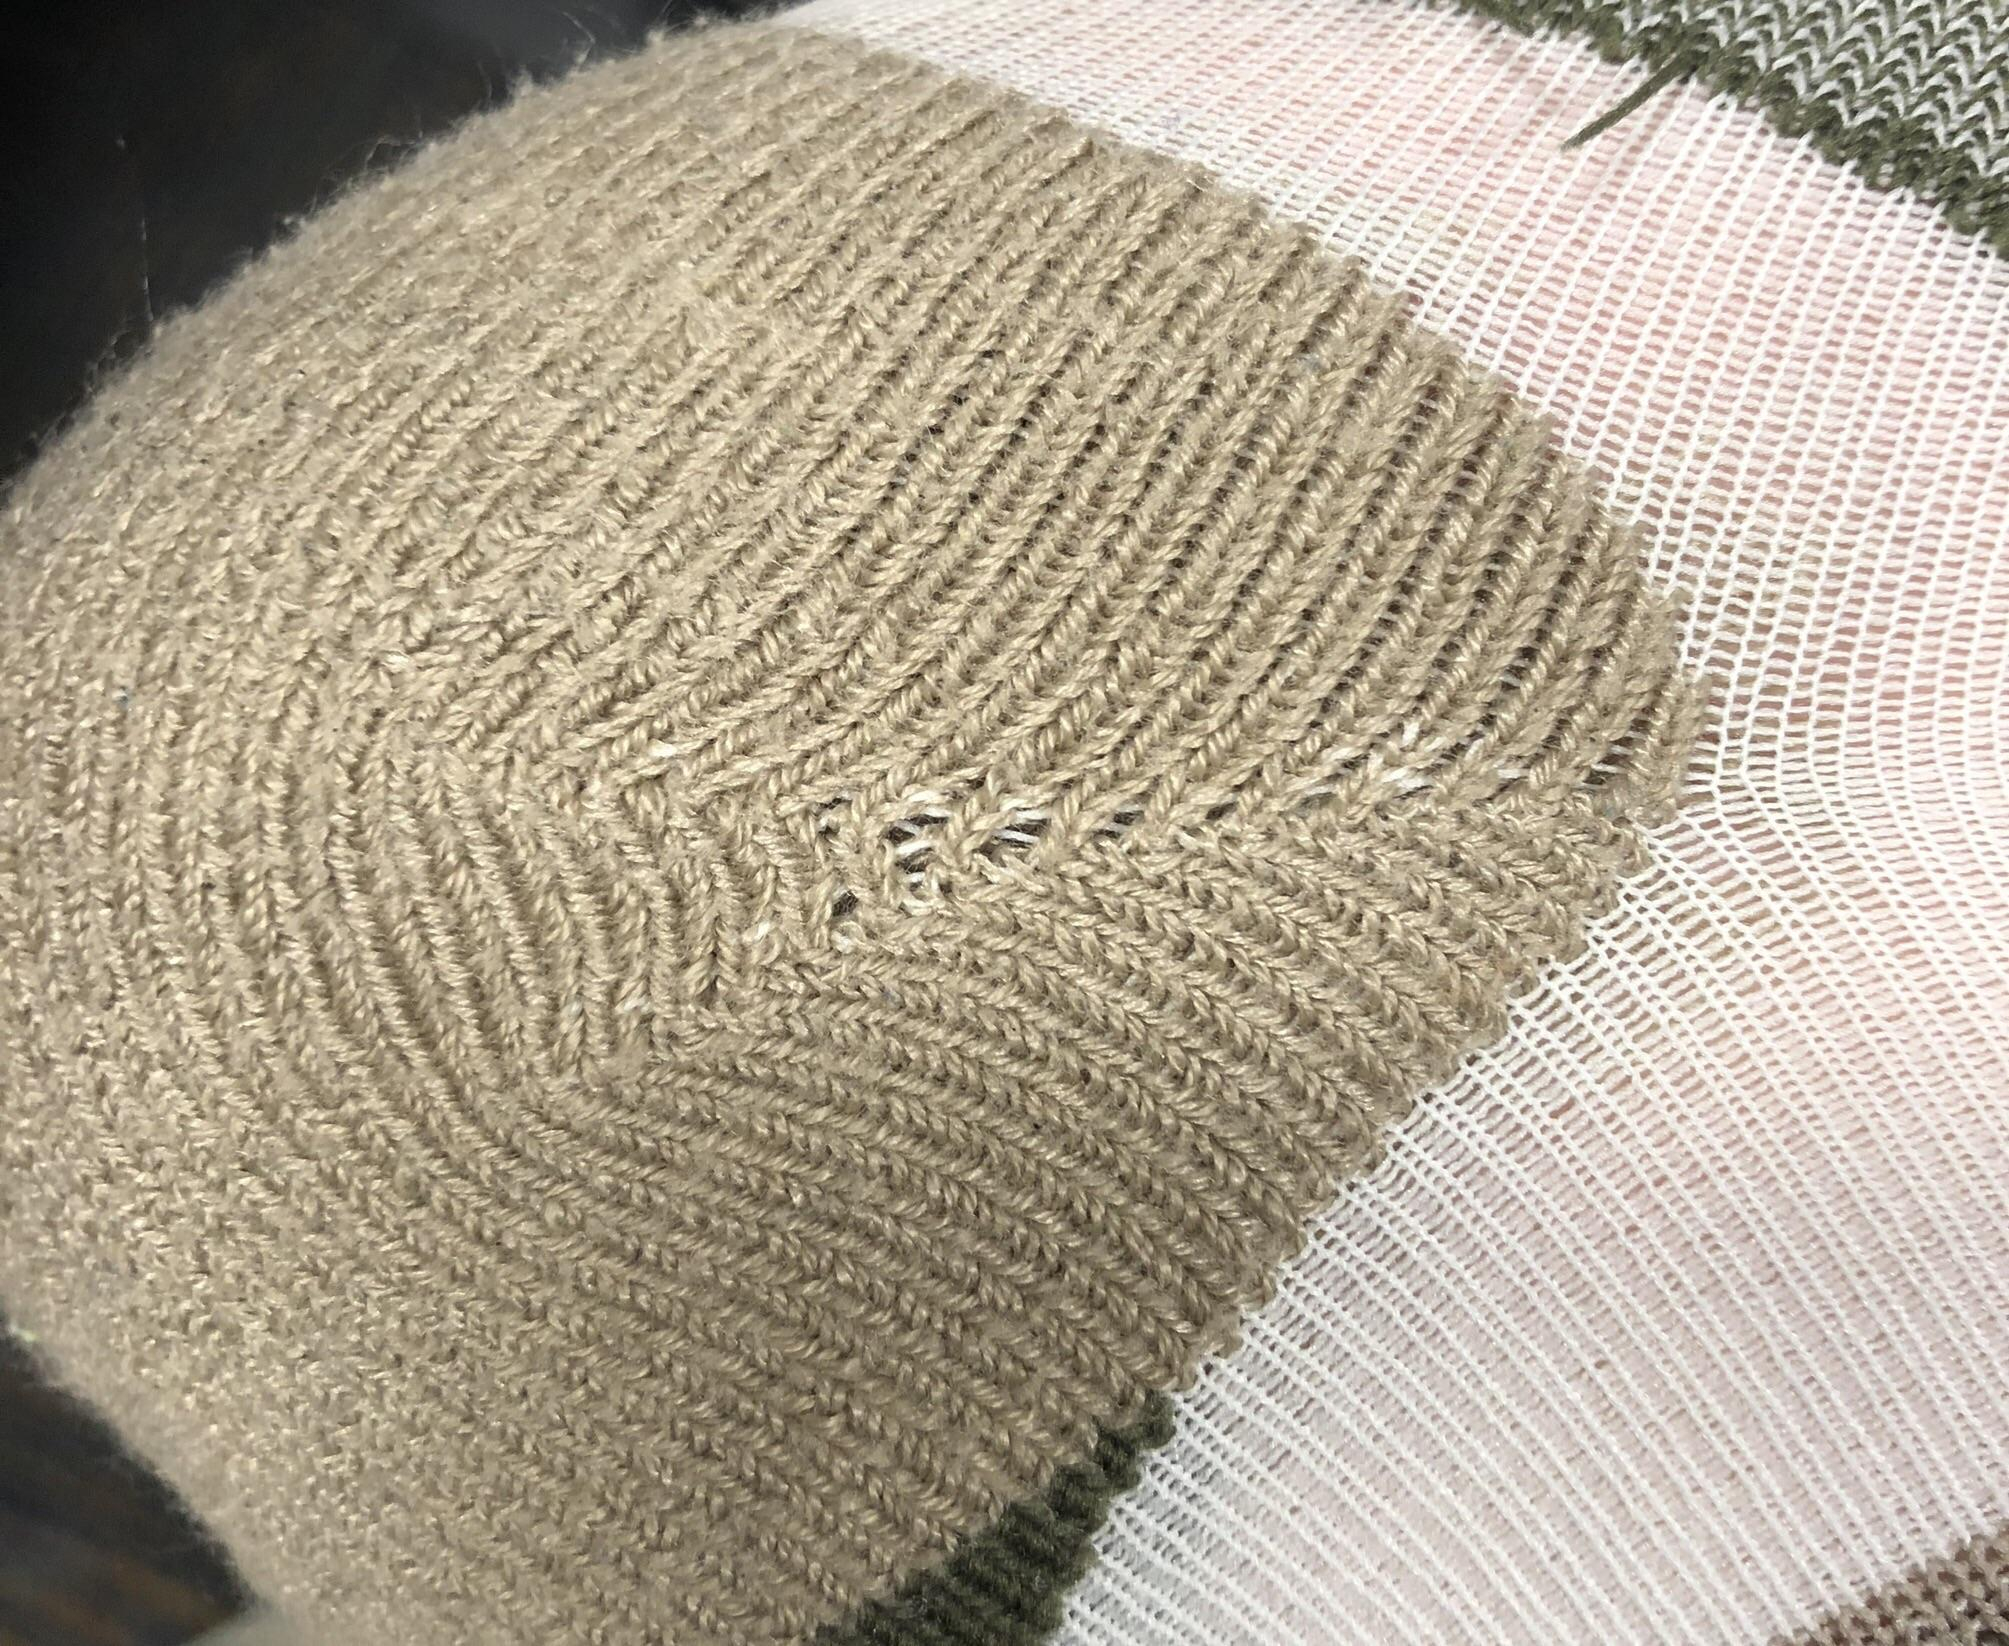 Machine Knit Sock Pattern Most Machine Knit Socks Have Some Sort Of Double Short Row Heel That